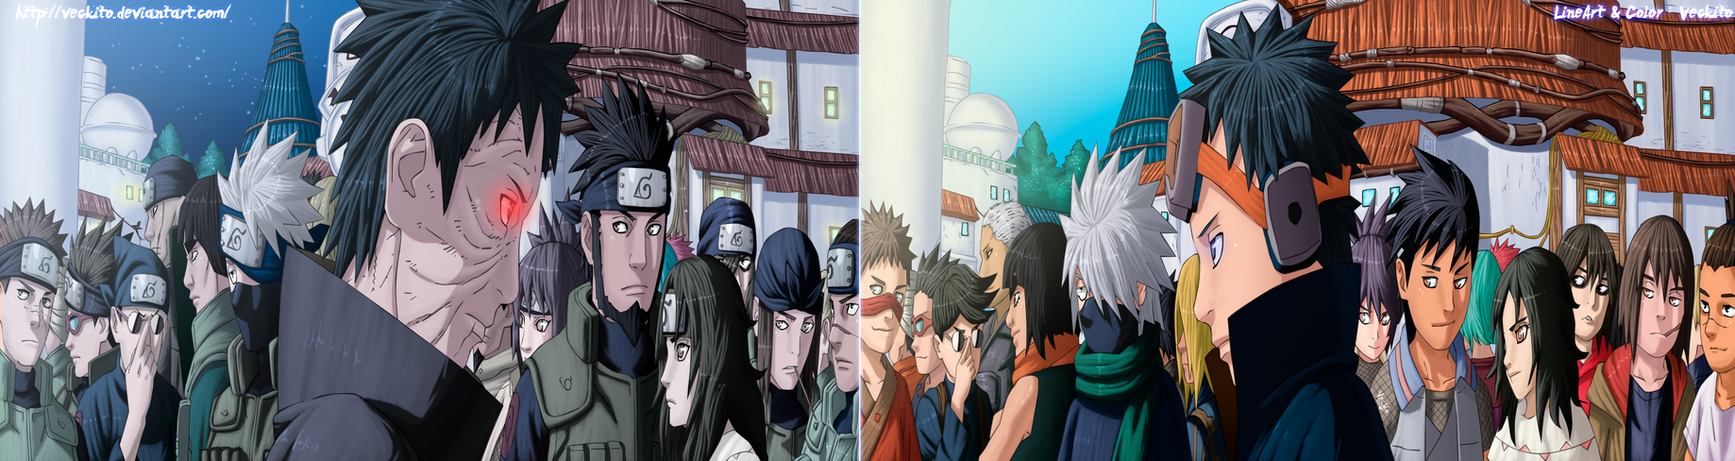 The past and present - Naruto Shippuden by Veckito